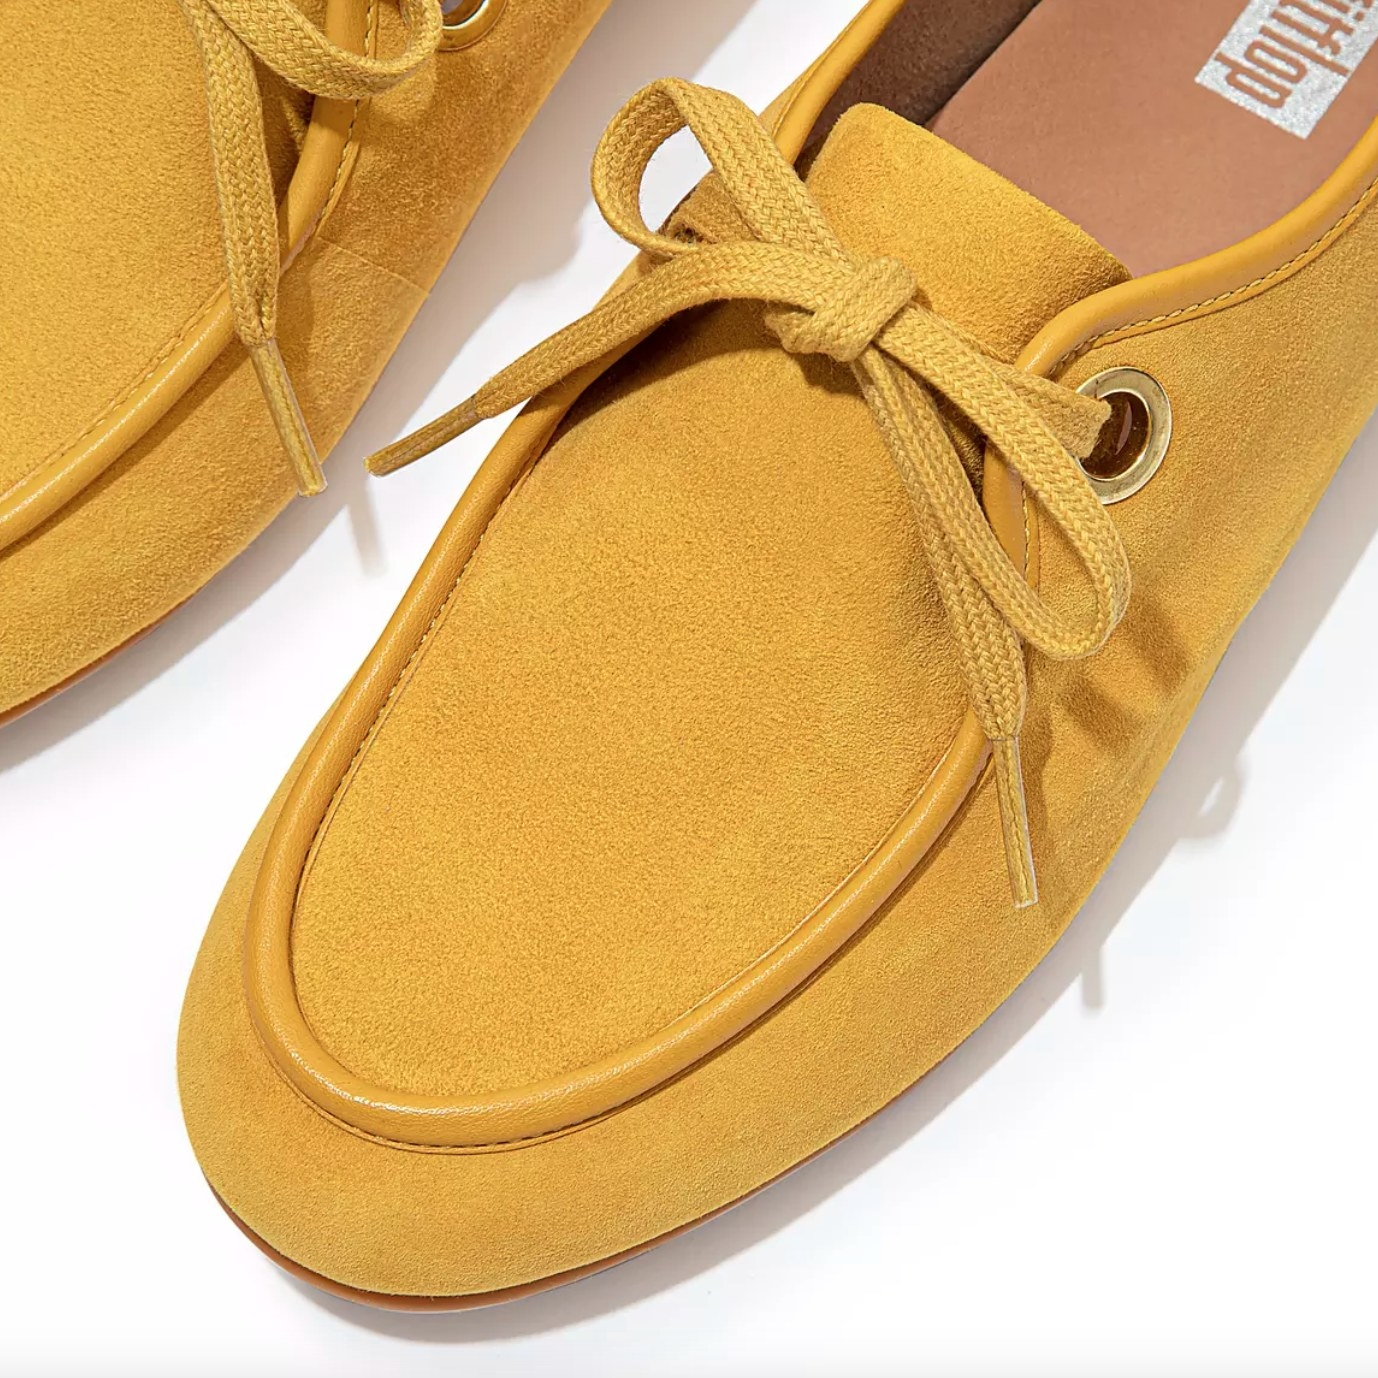 the eyelet suede lace-up in sunshine yellow